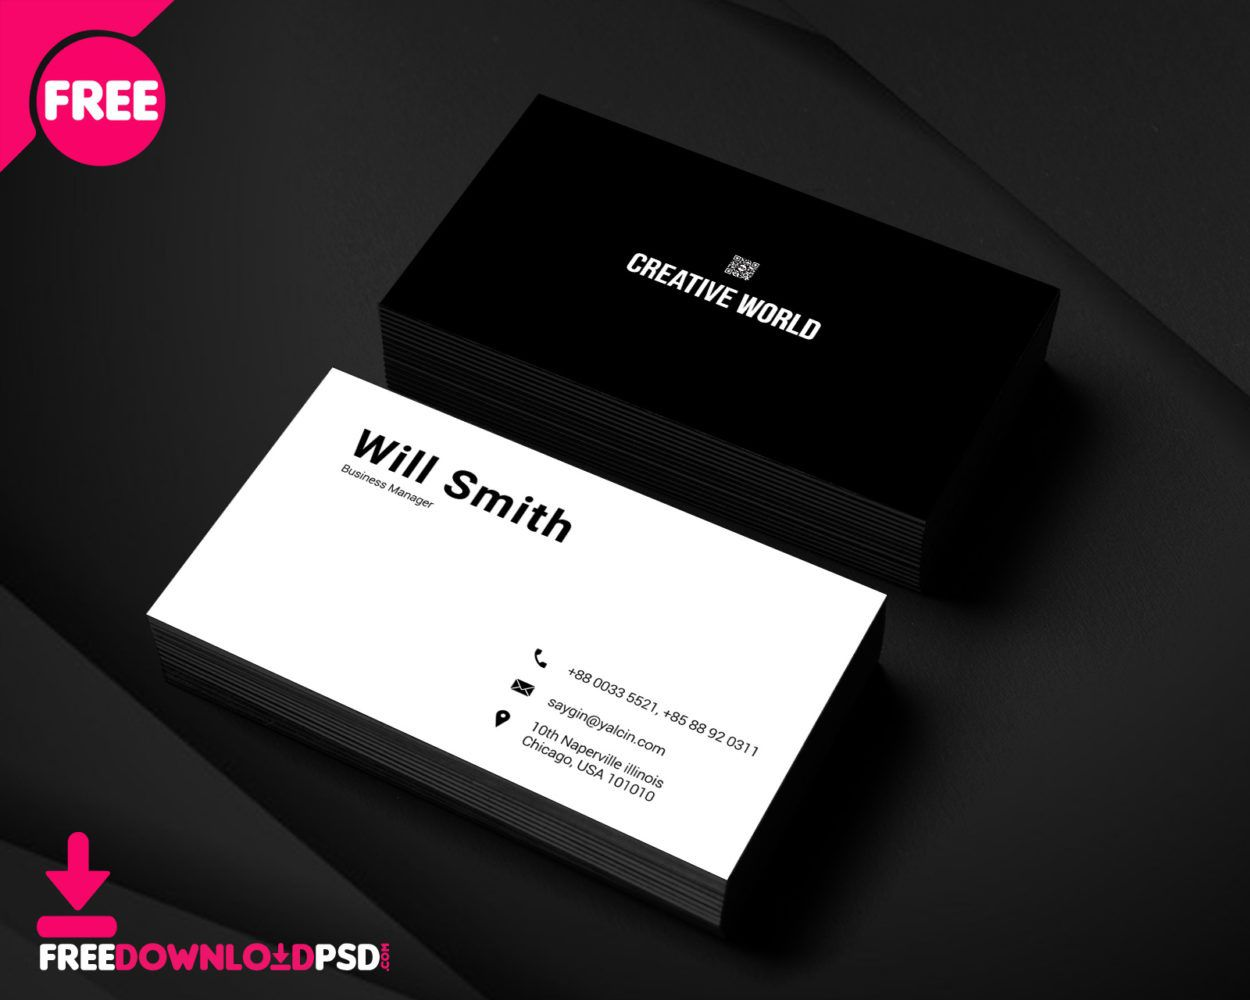 008 Dreaded Simple Busines Card Template Free High Resolution  Visiting Design Psd File Download Minimalist BasicFull